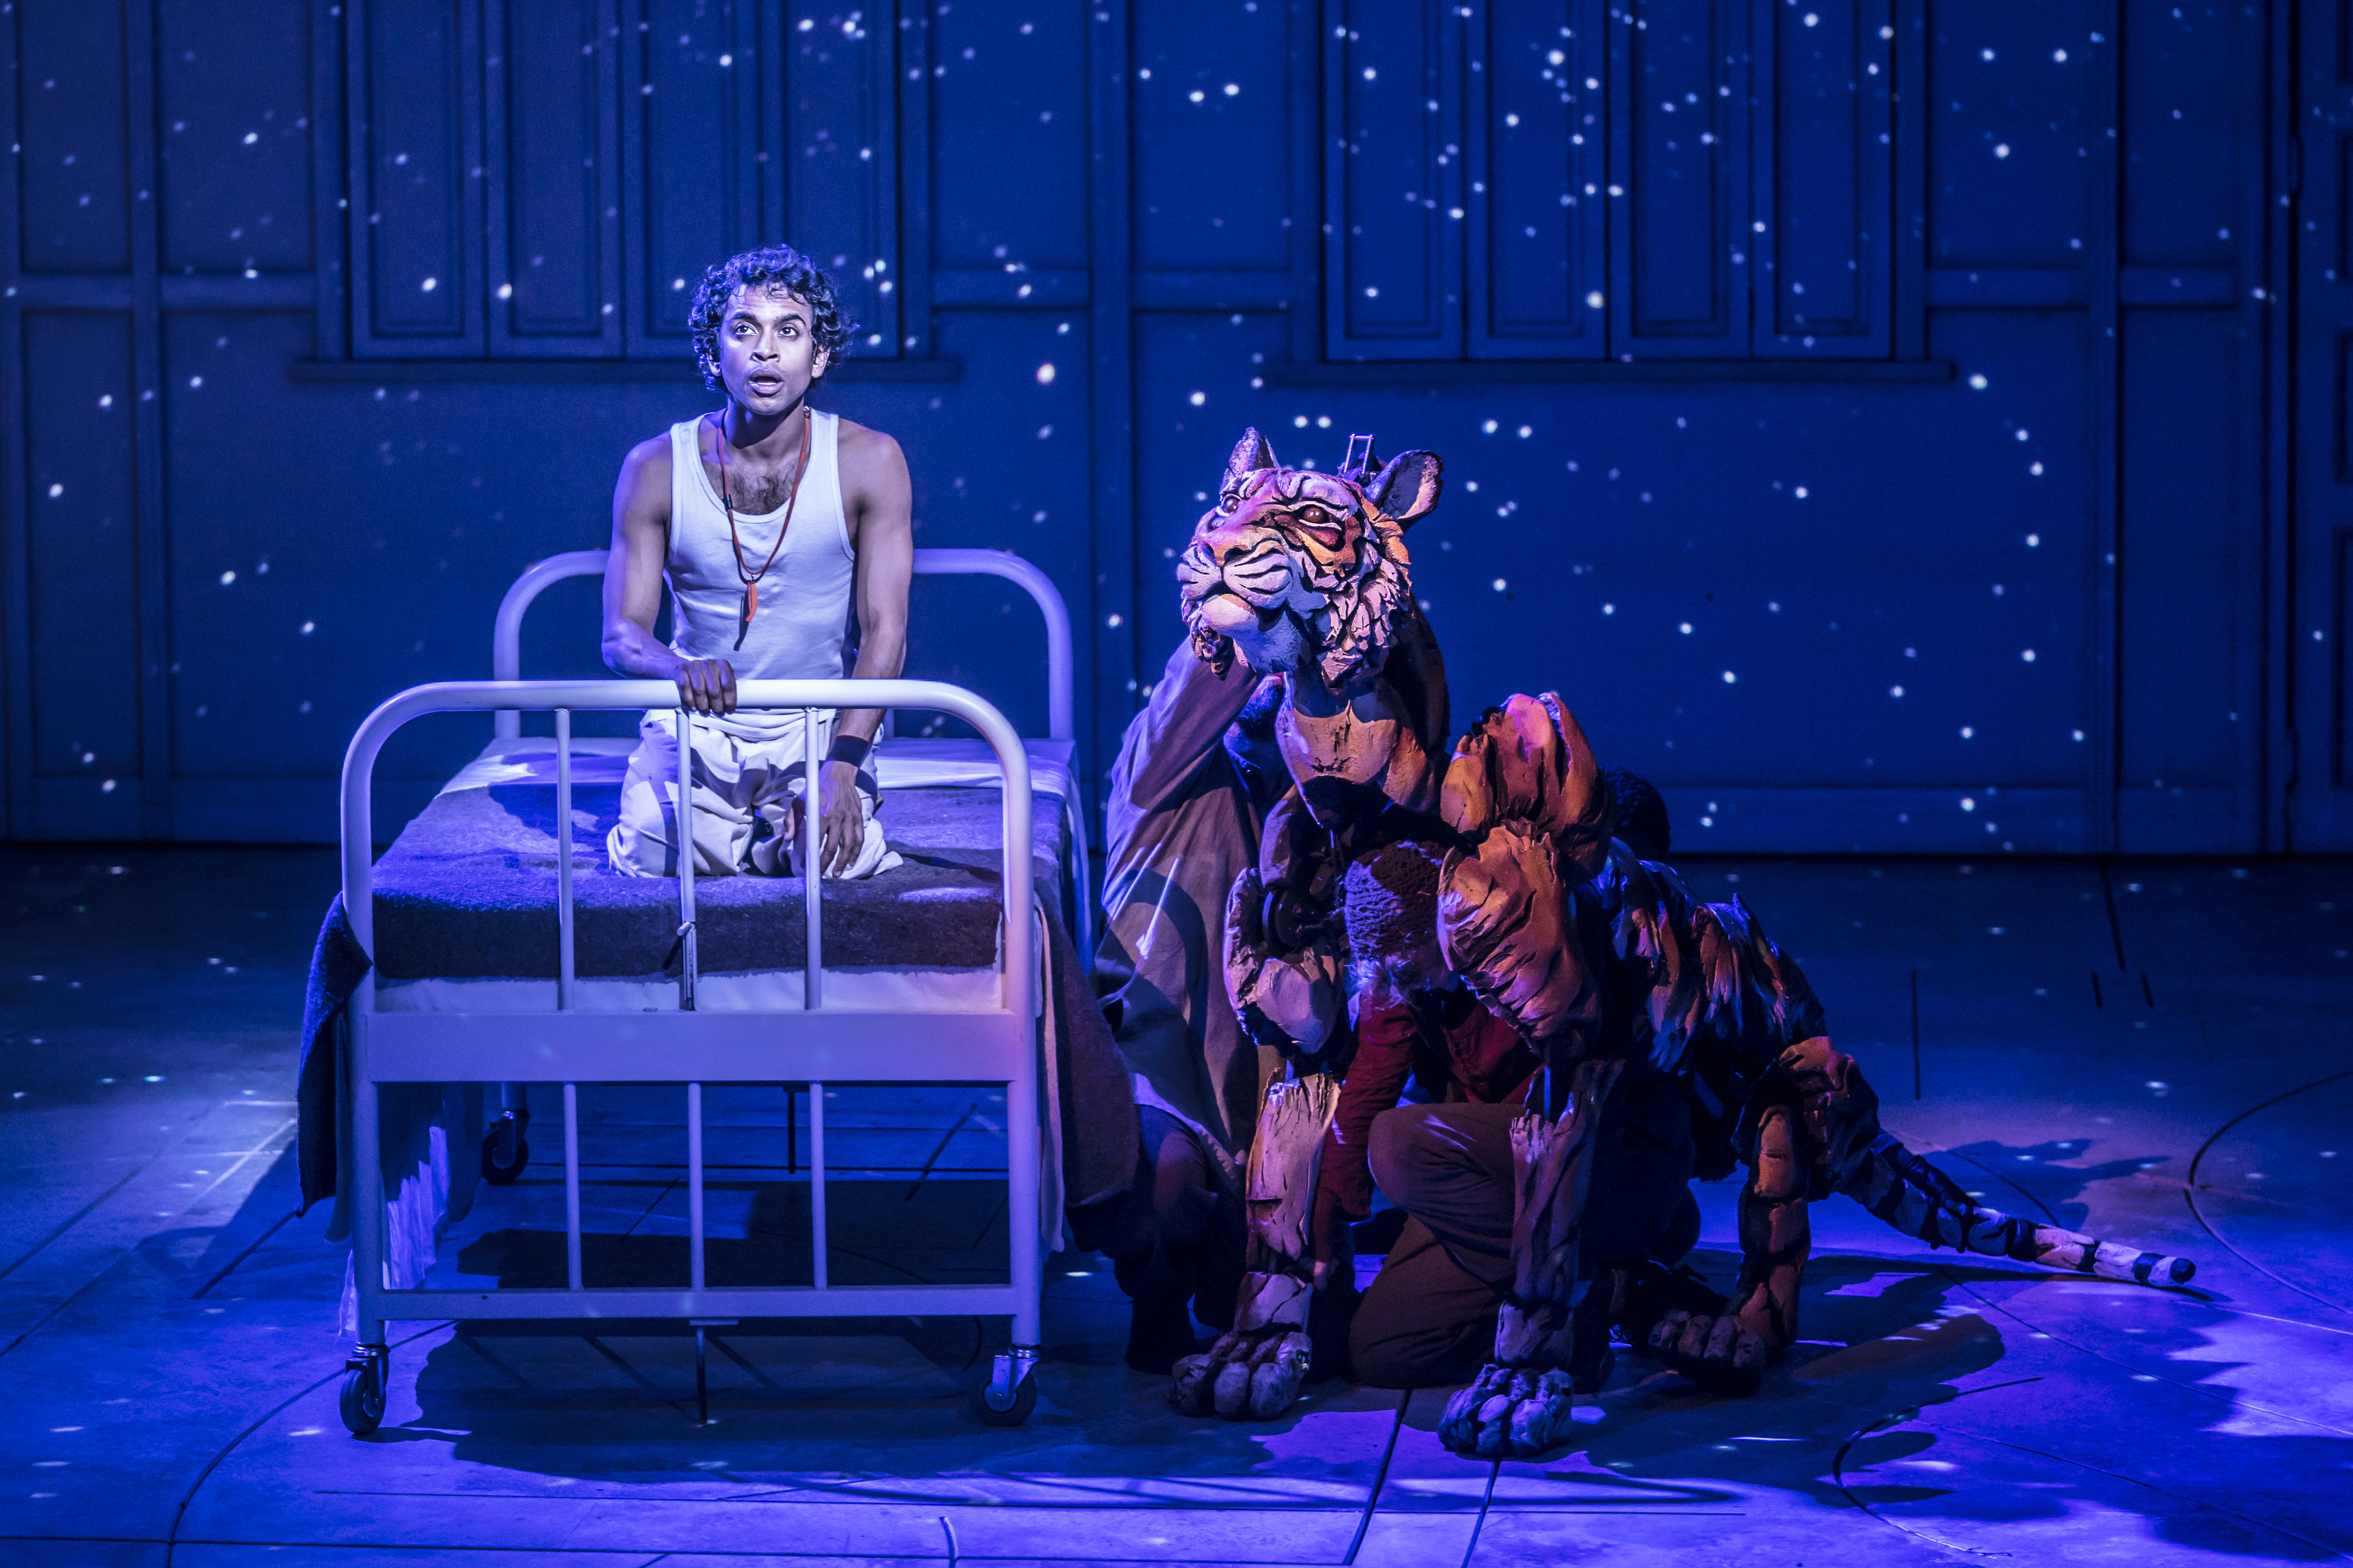 MAGICAL: Hiran Abeysekera stars as Pi alongside the puppet form of the tiger designed by Nick Barnes and Finn Caldwell (Pic credit: Johan Persson)